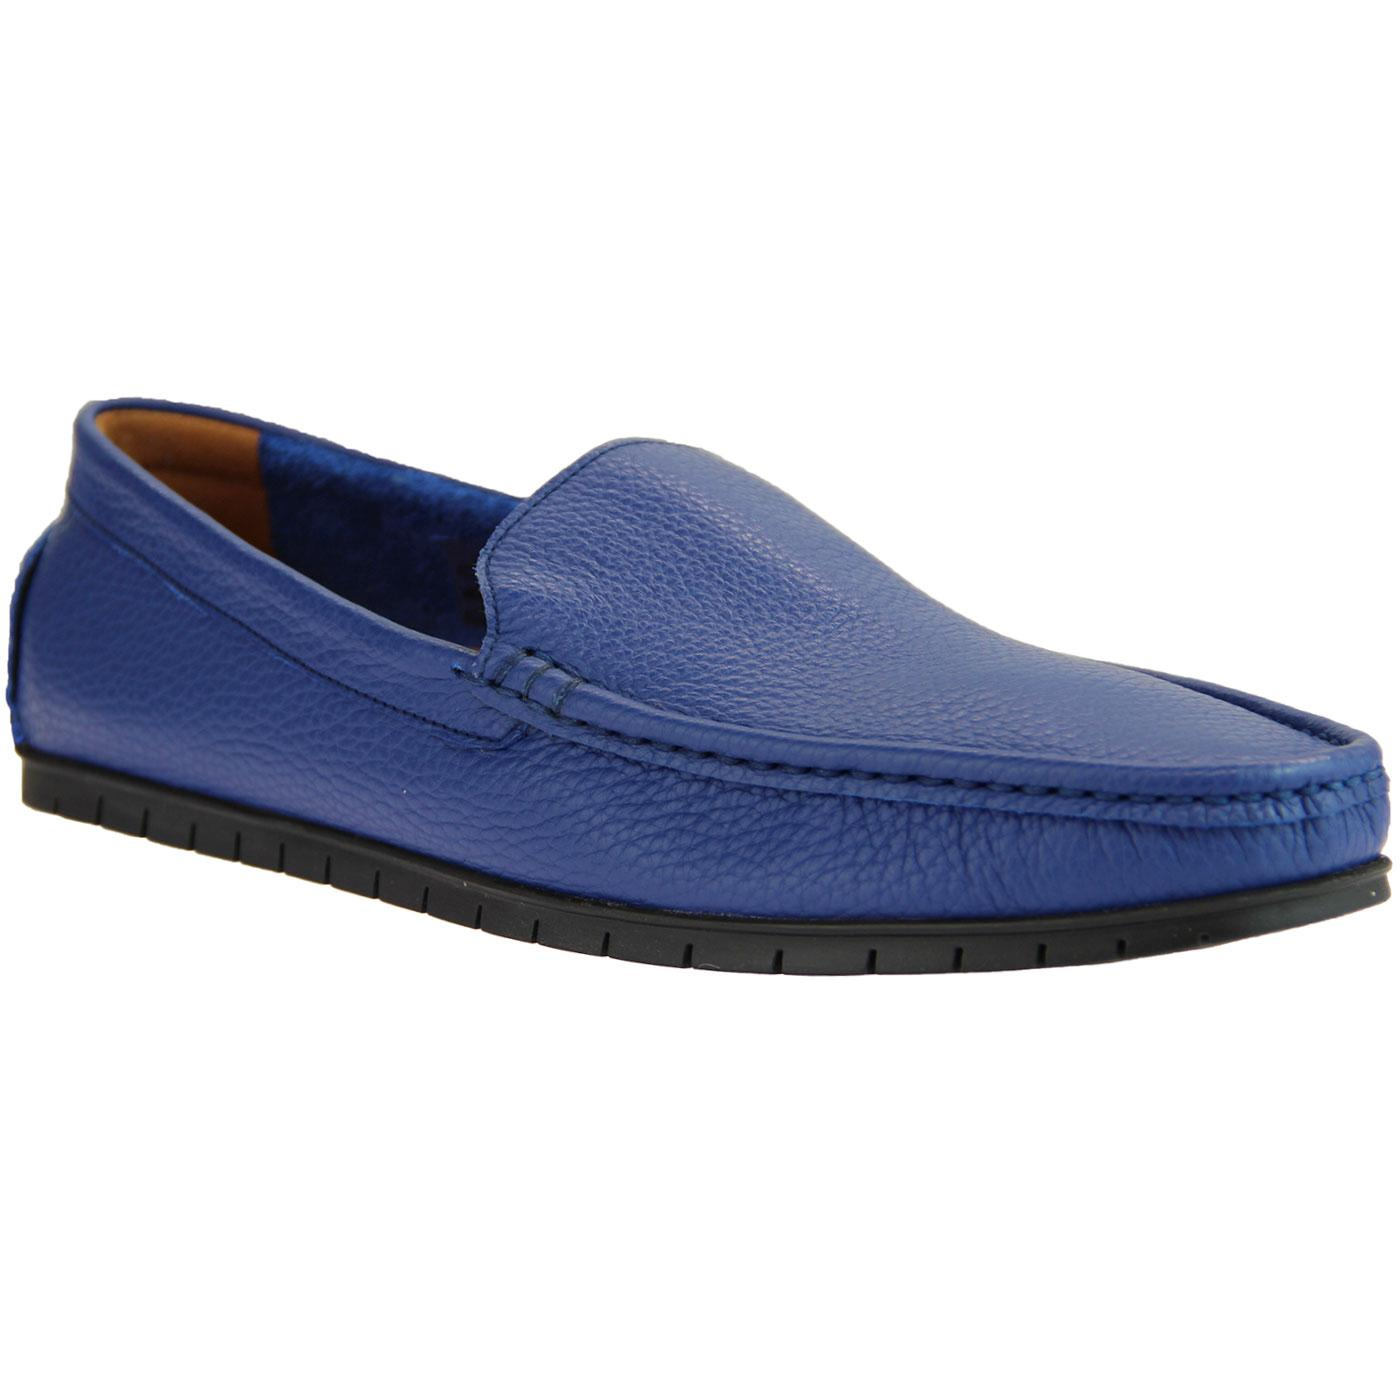 LACUZZO Retro Mod Moccasin Loafer Driving Shoes